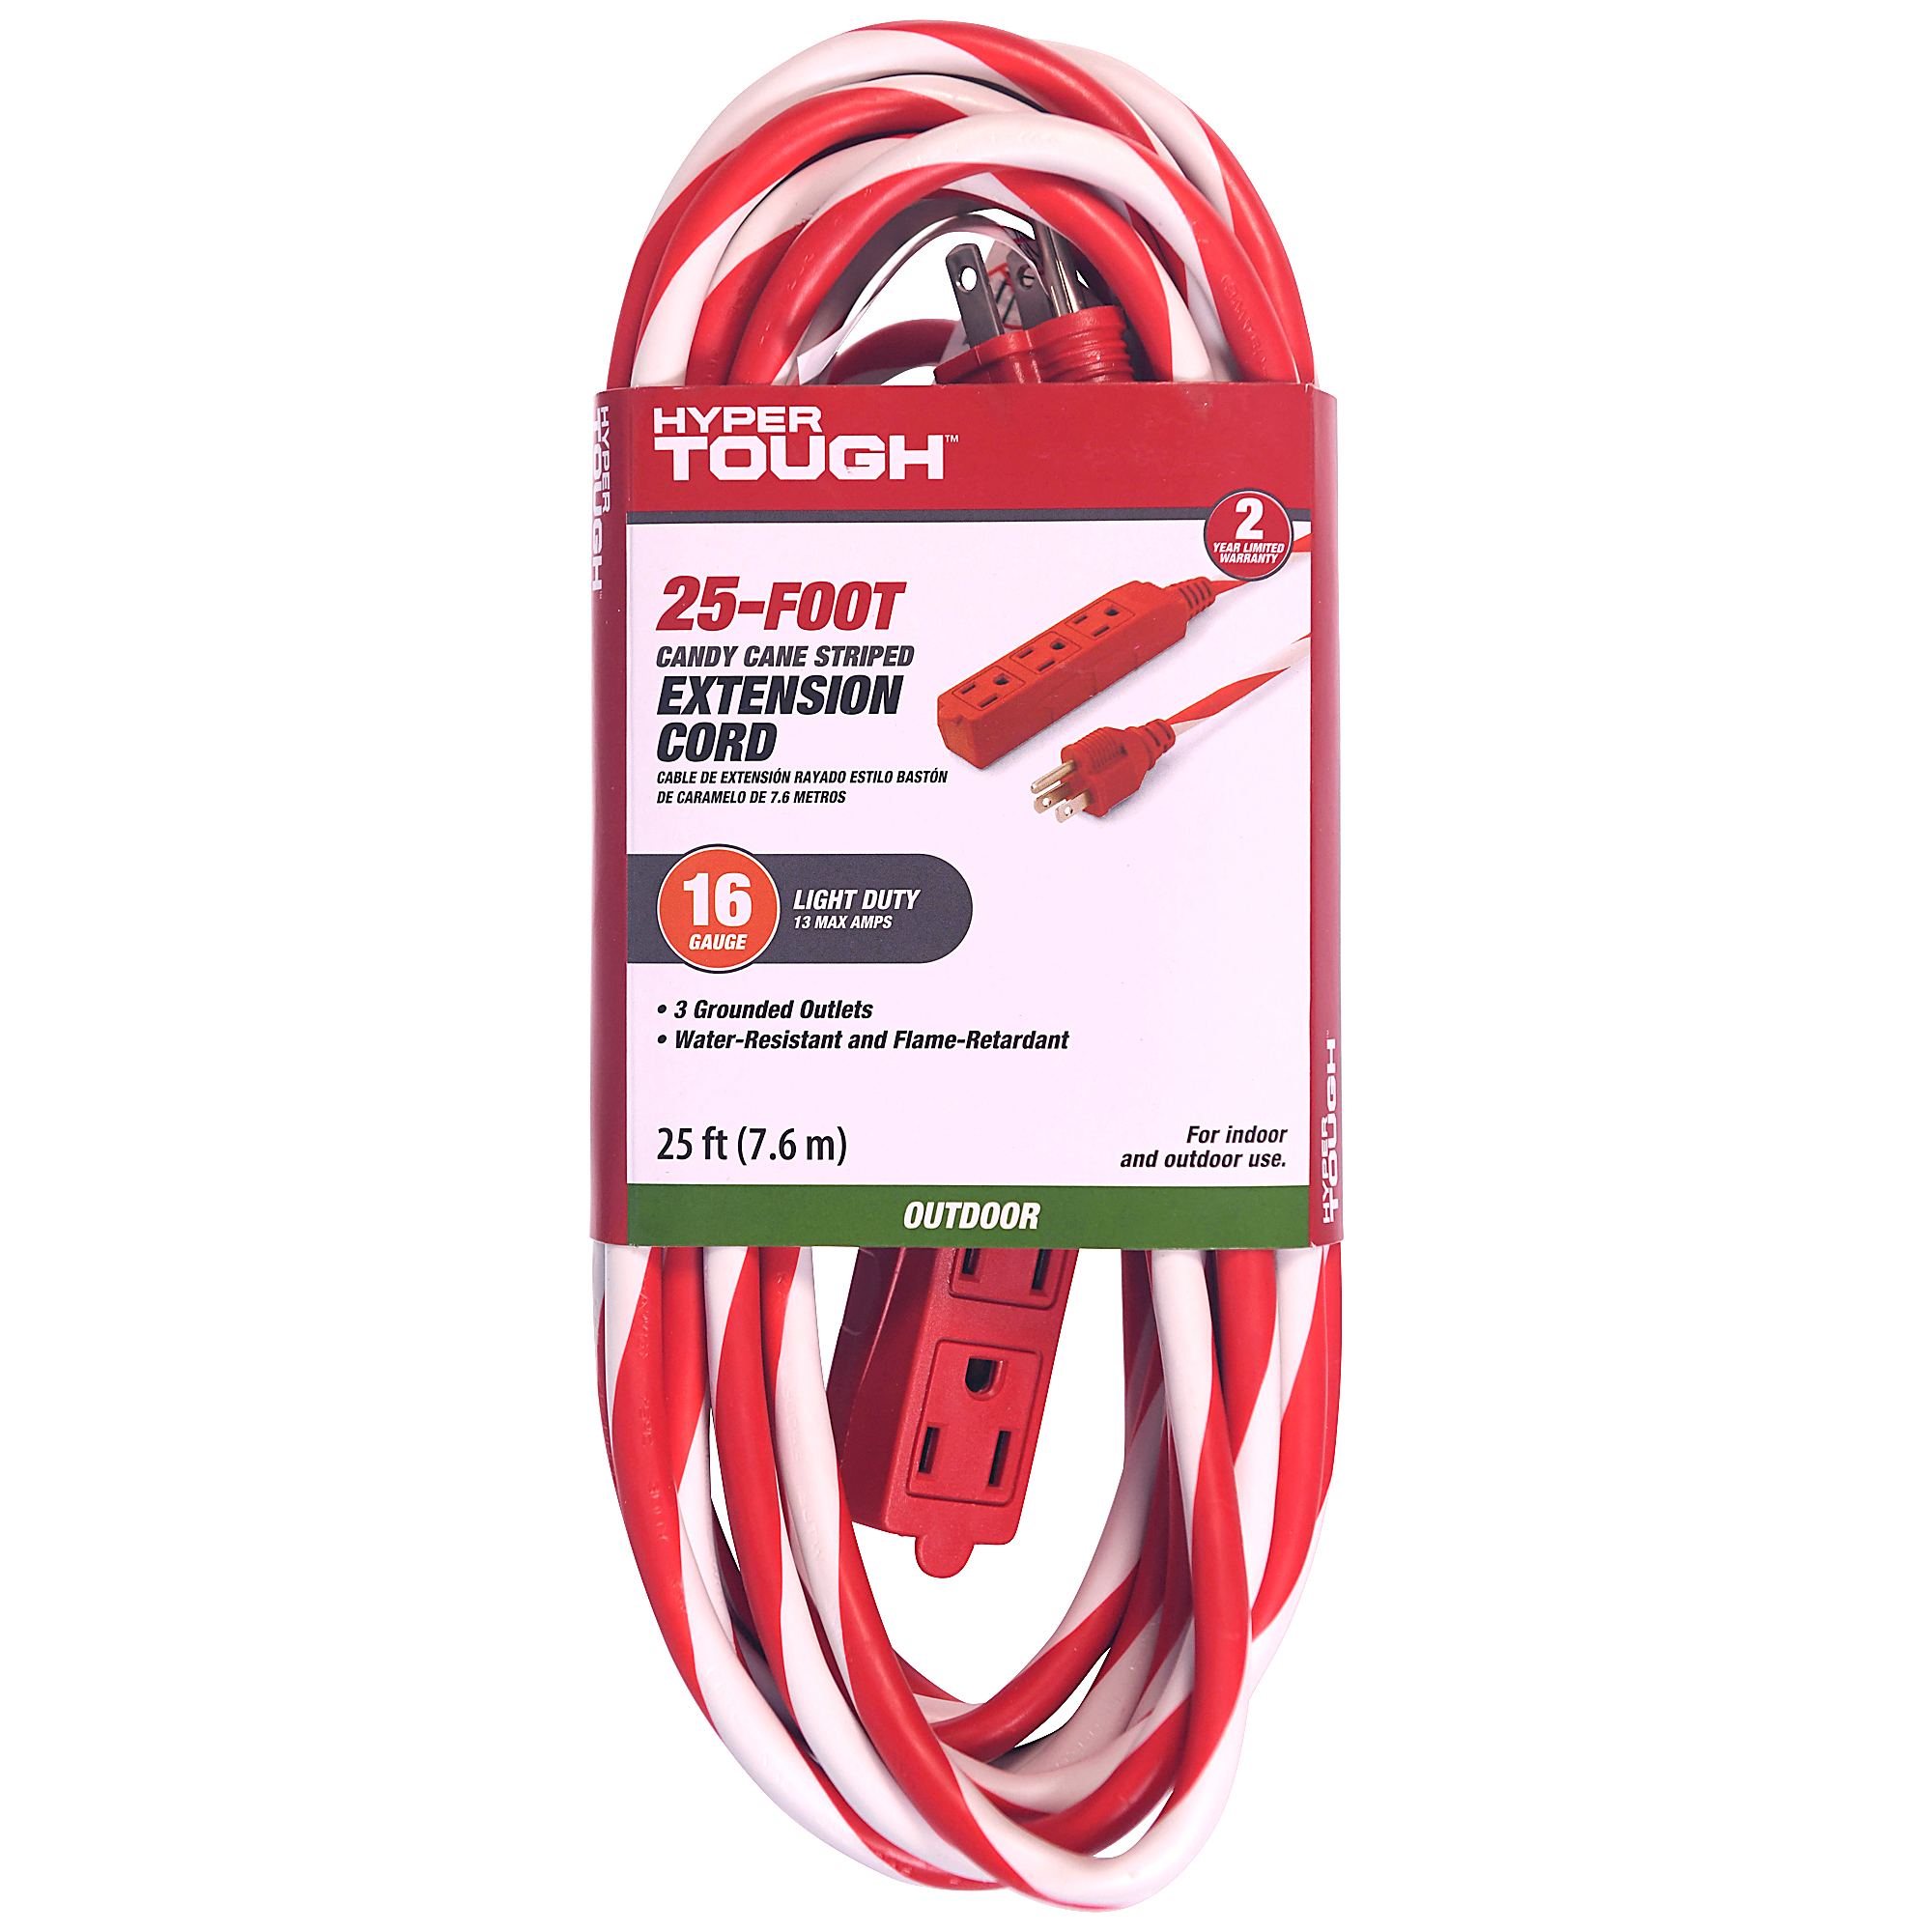 Hyper Tough 3-outlet 25` Candy Cane Cord